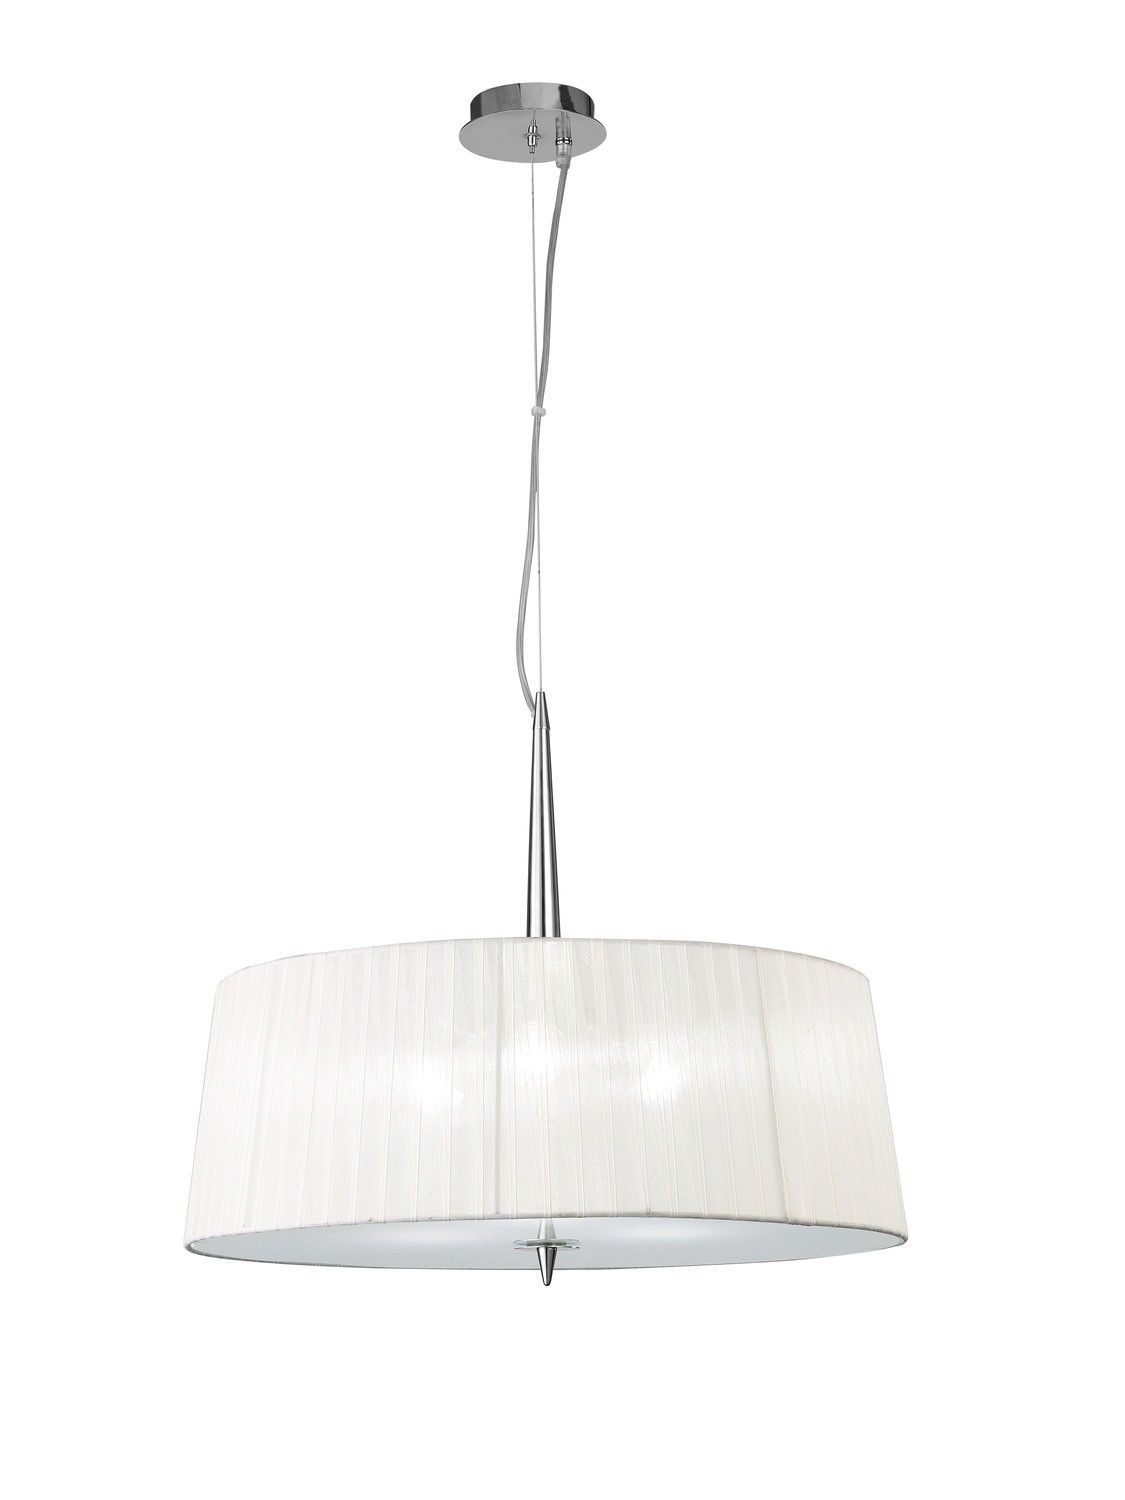 Loewe Single Pendant 3 Light E14, Polished Chrome With White Shade